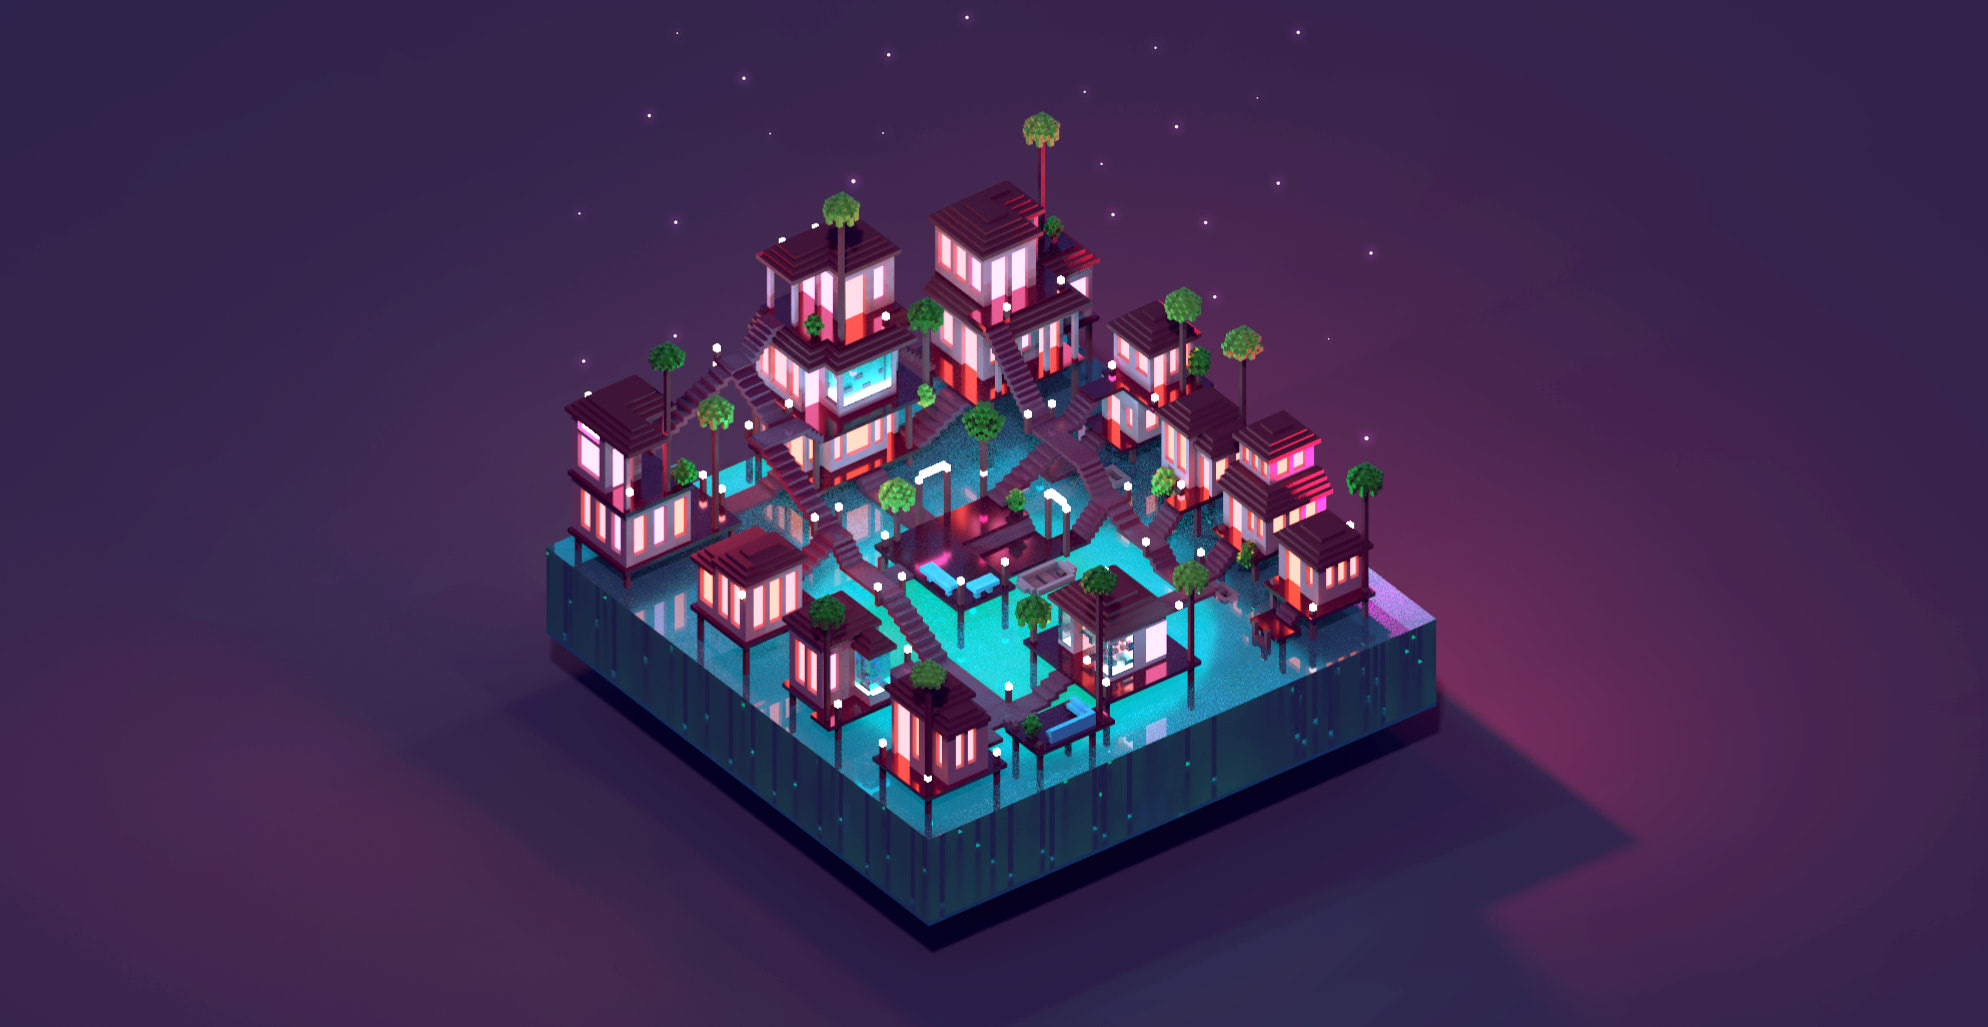 Tiki Town, project by Meg Wehrlen on MagicaVoxel showing animaginary and magical city on a square base, made of bungalows over water. The setting is tropical, by night, includes a lot of stairs, a boat service, multiple houes and palm trees. Voxel art, illustration, game design